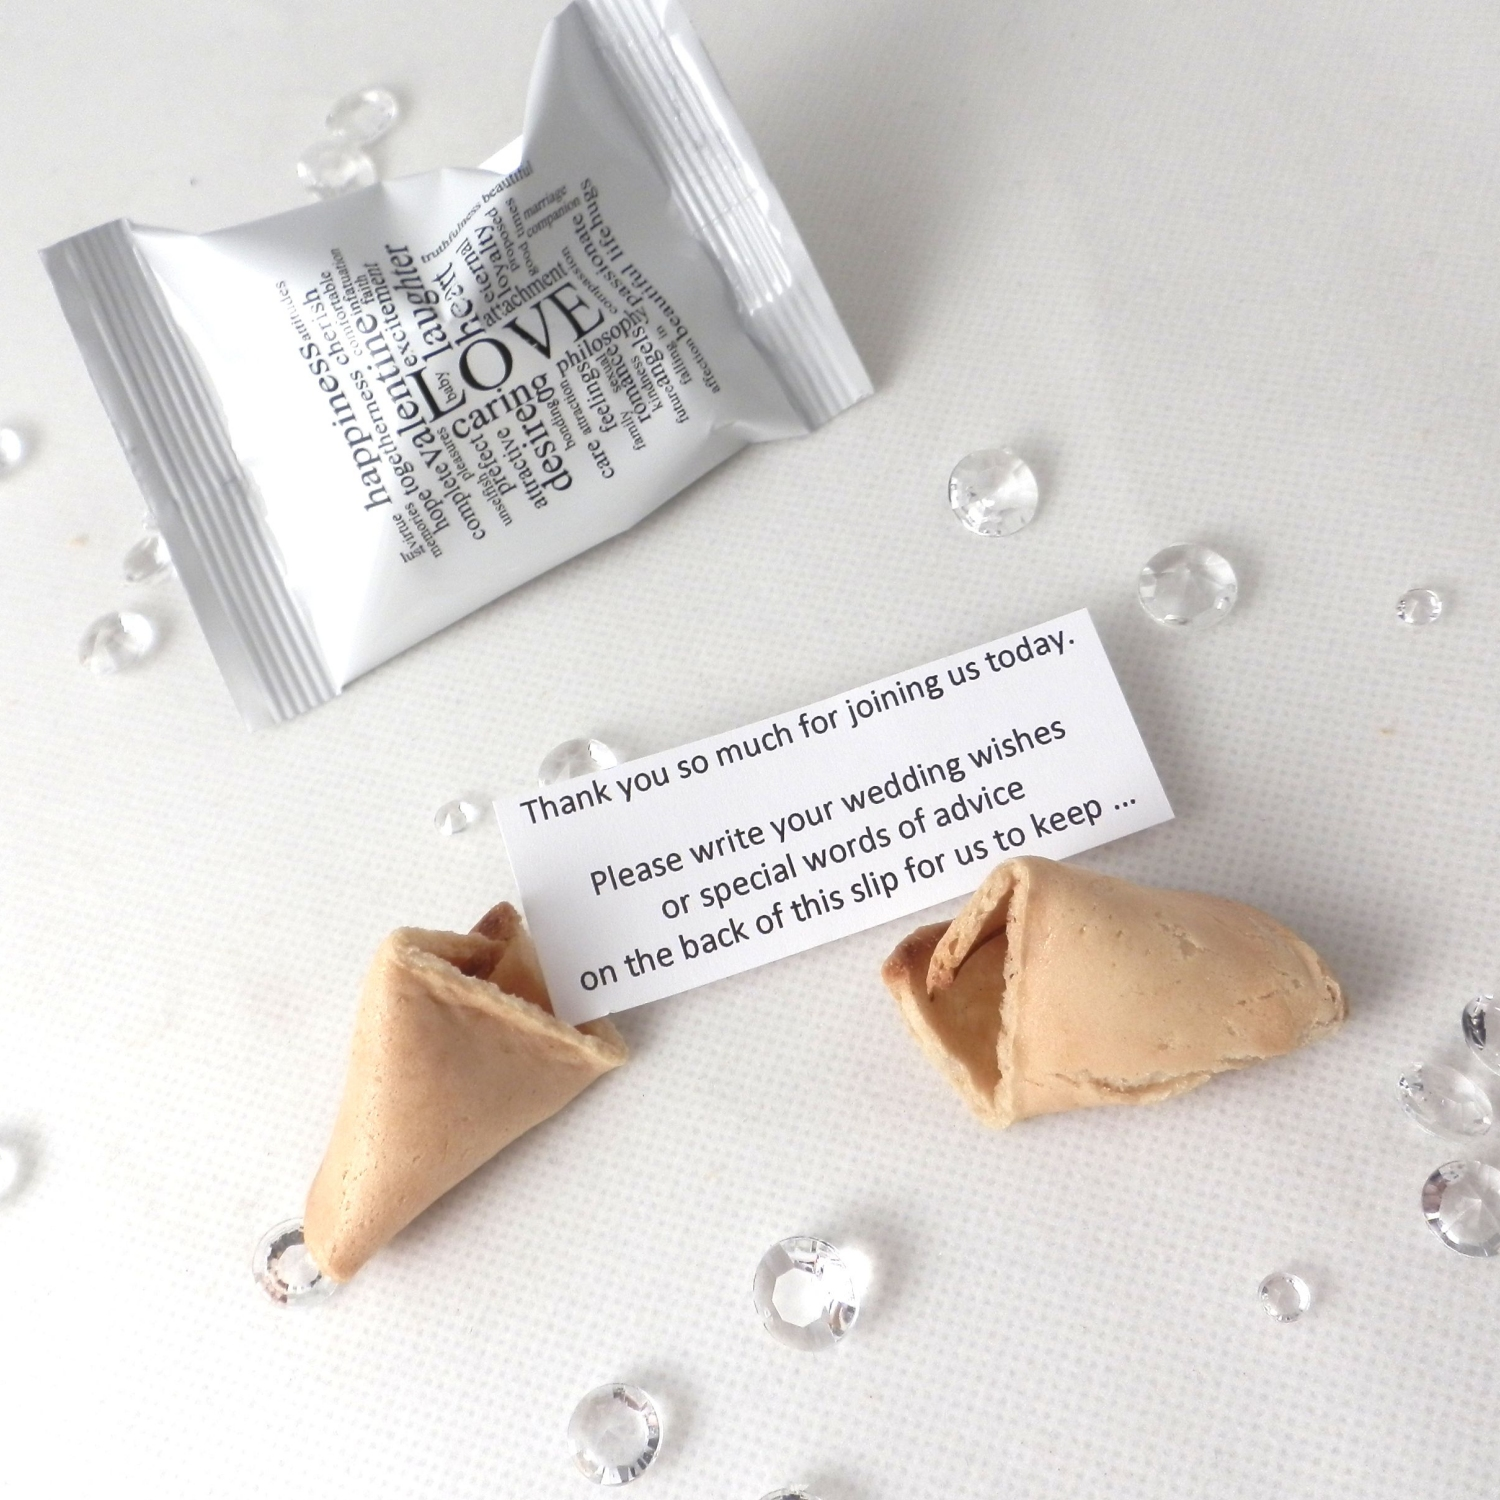 Wedding Wishes Wedding Fortune Cookies - Yumbles.com